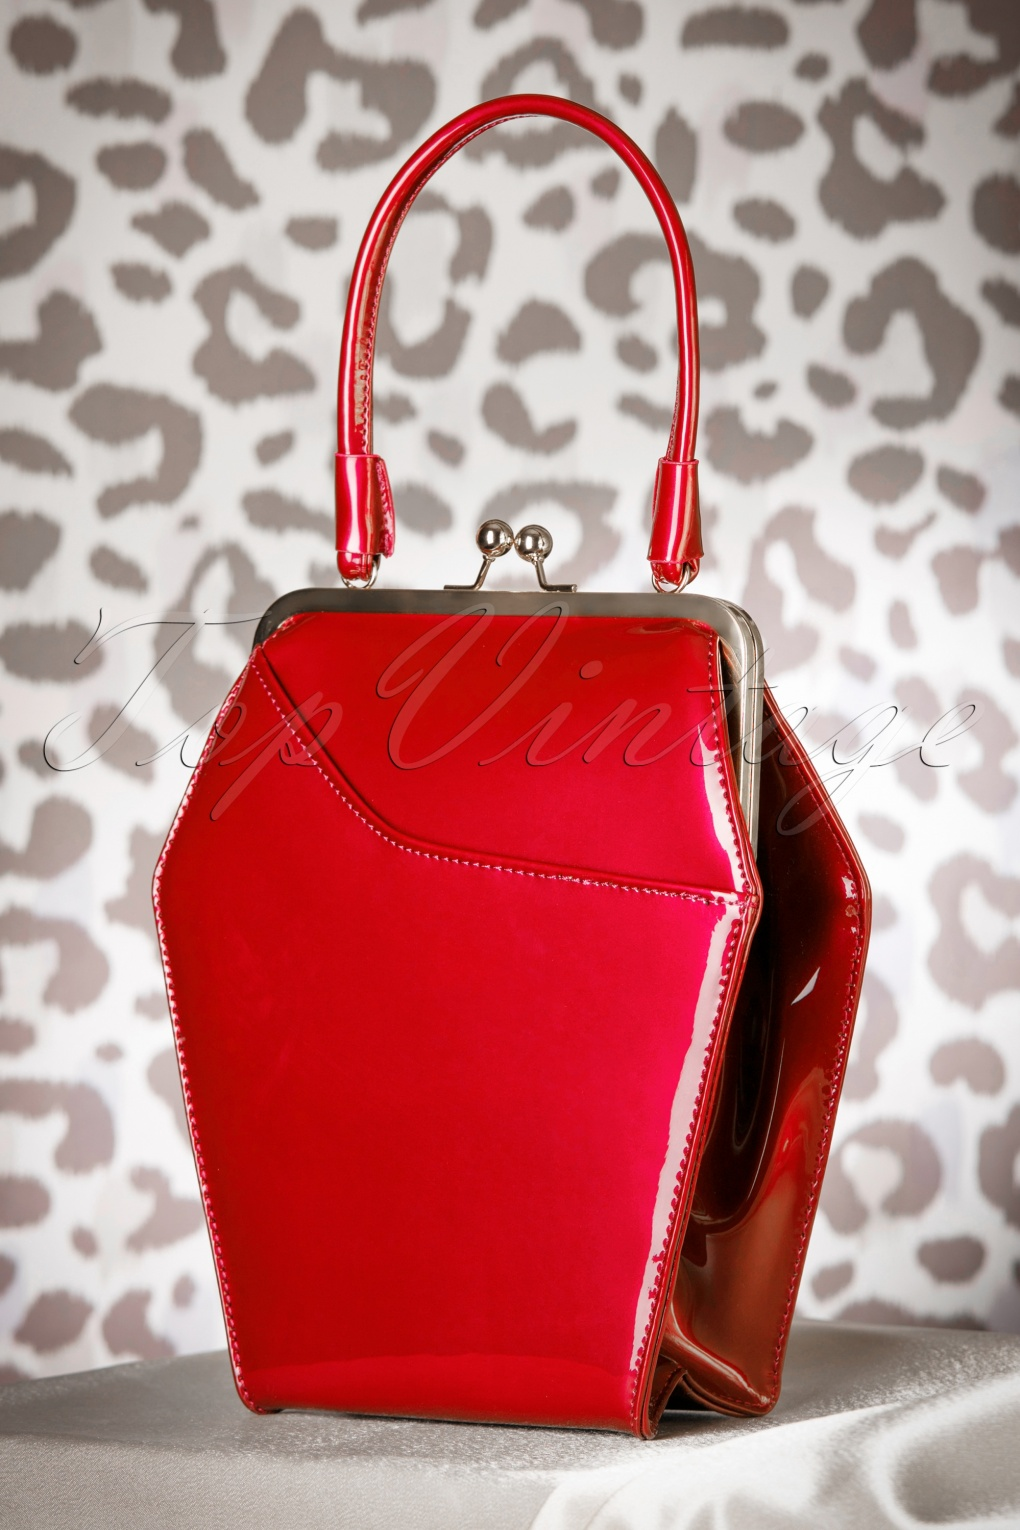 1950s Handbags, Purses, and Evening Bag Styles 50s To Die For Handbag In Poison Apple Red £60.27 AT vintagedancer.com